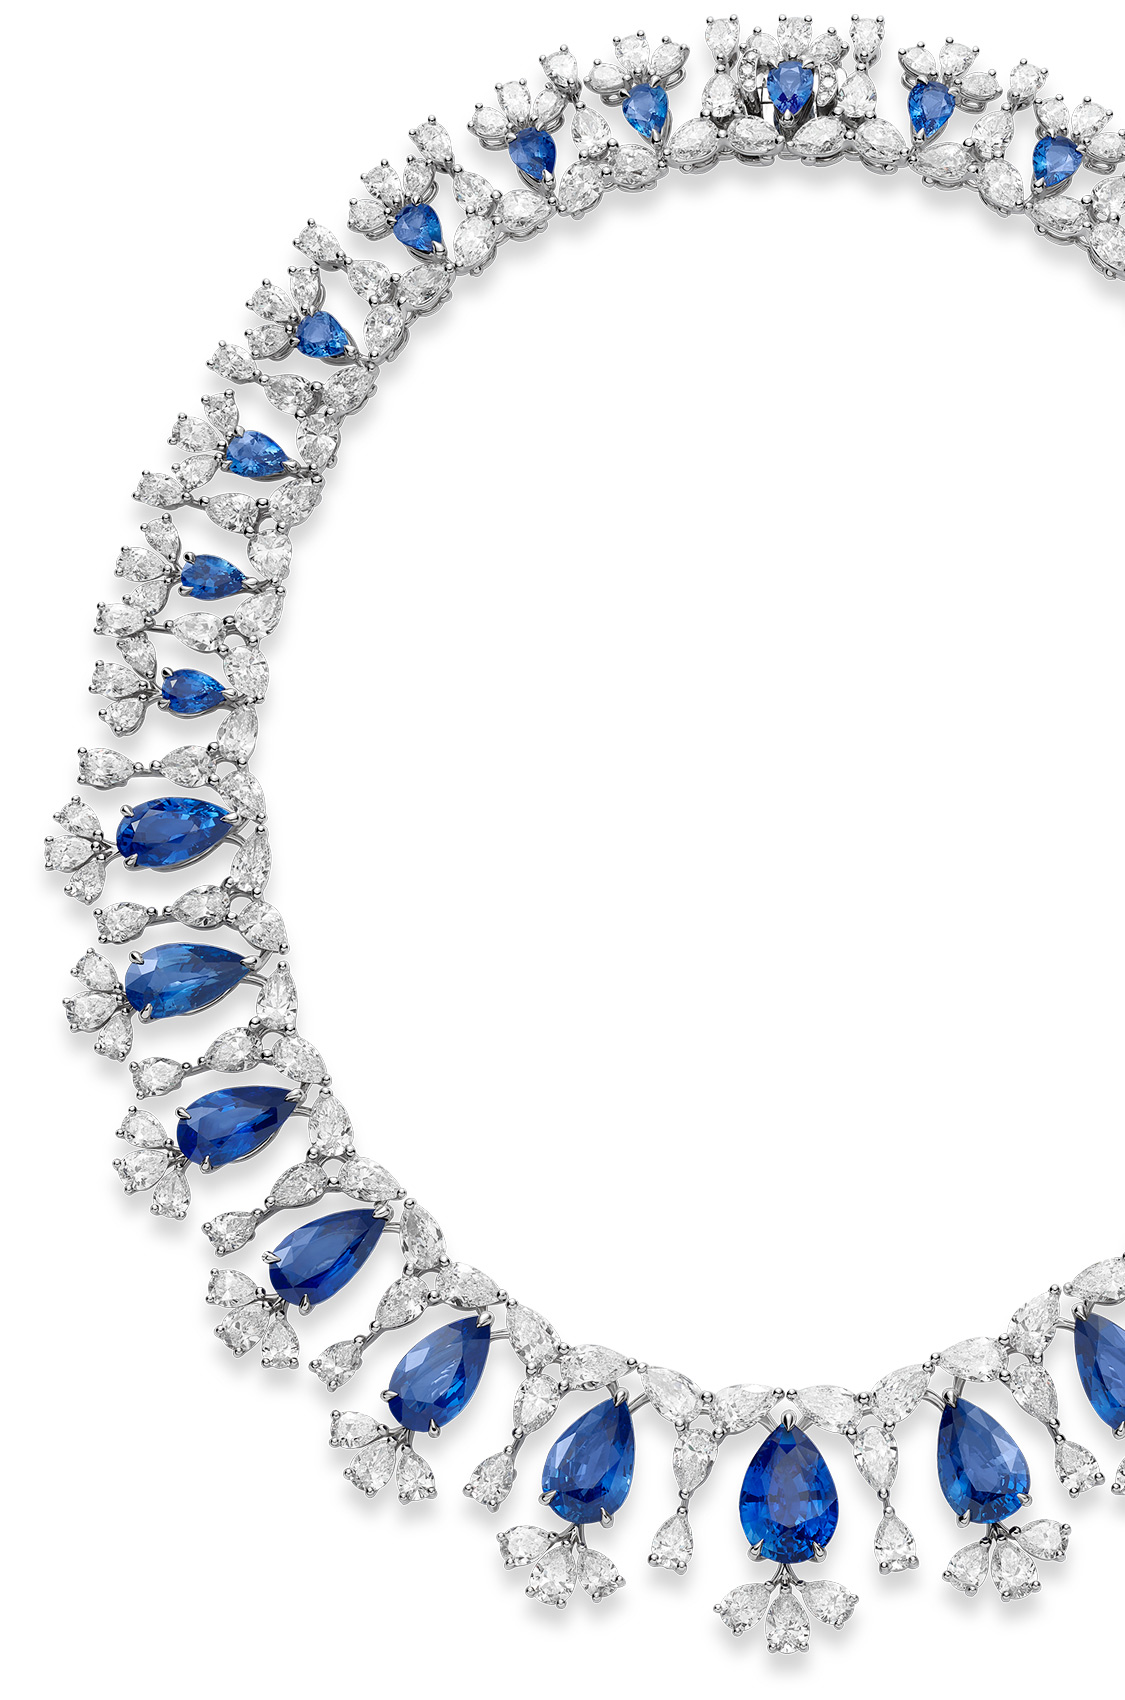 Sapphire necklace with blue diamonds